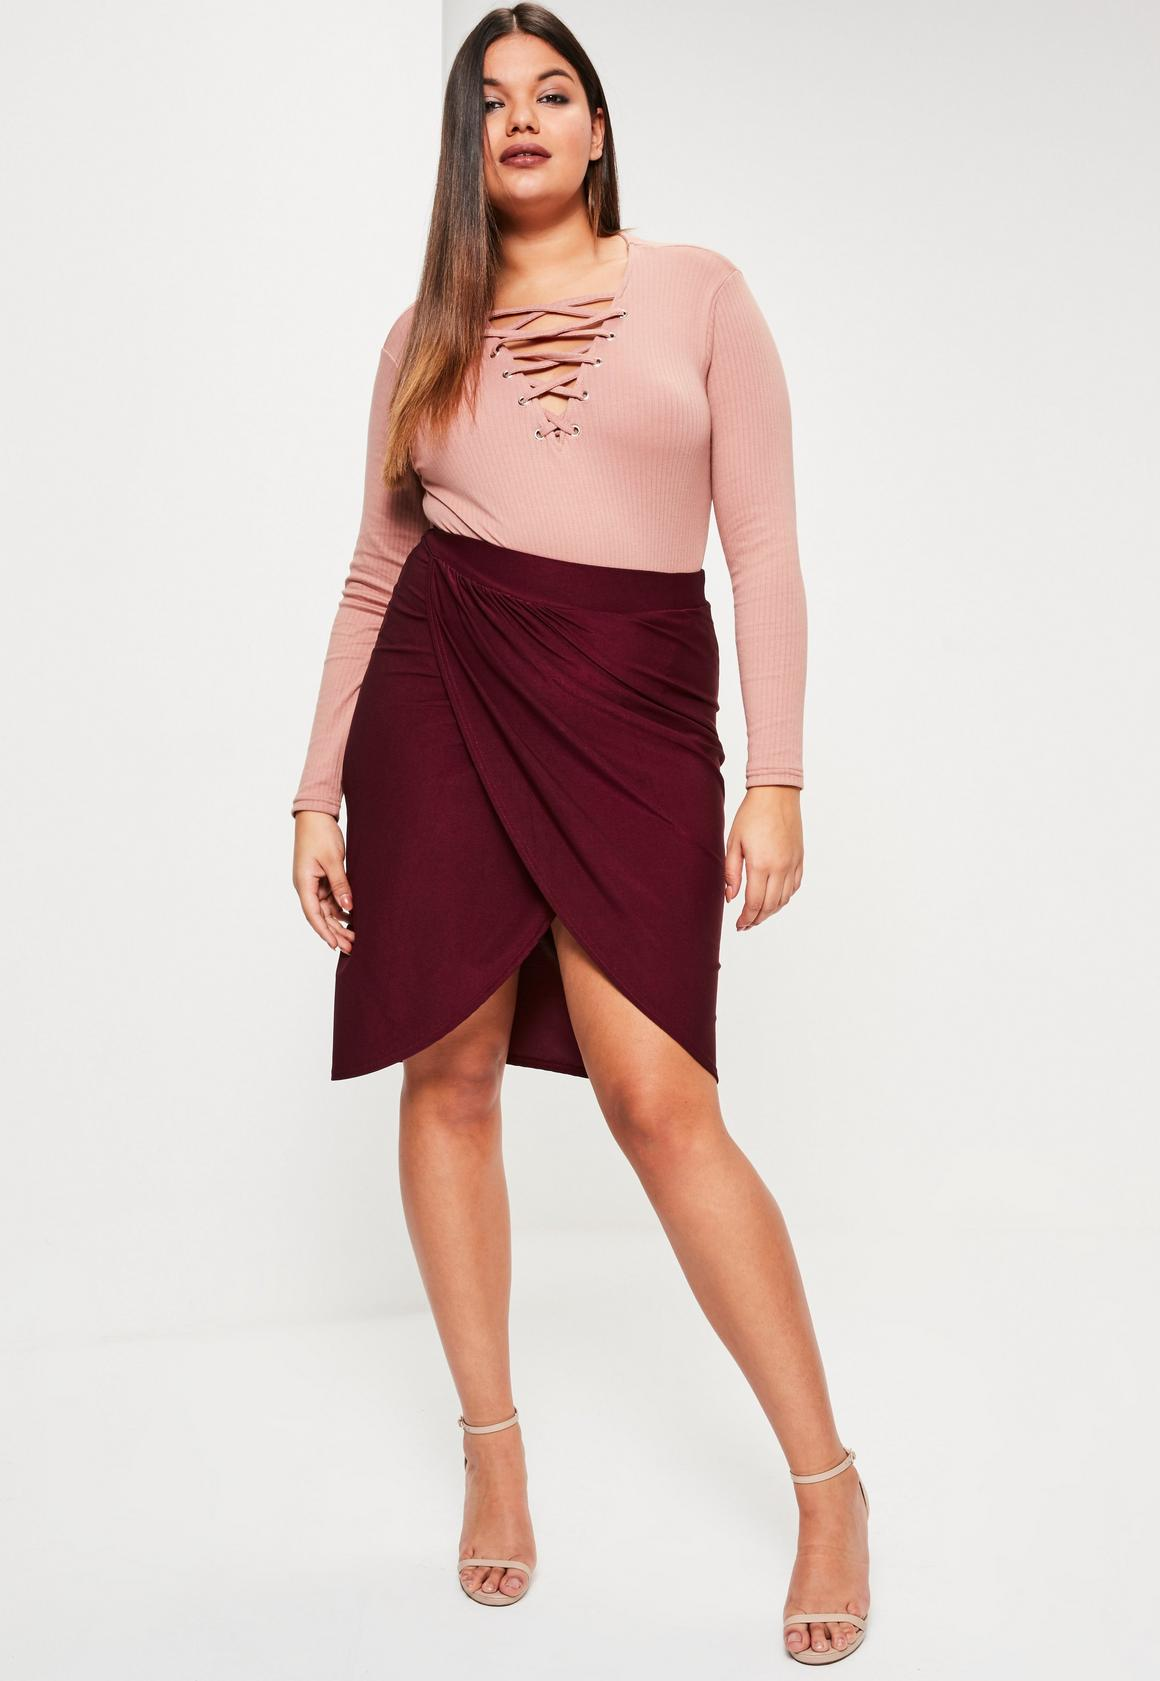 Plus Size Skirts | Womens Skirts Size 16  from Missguided